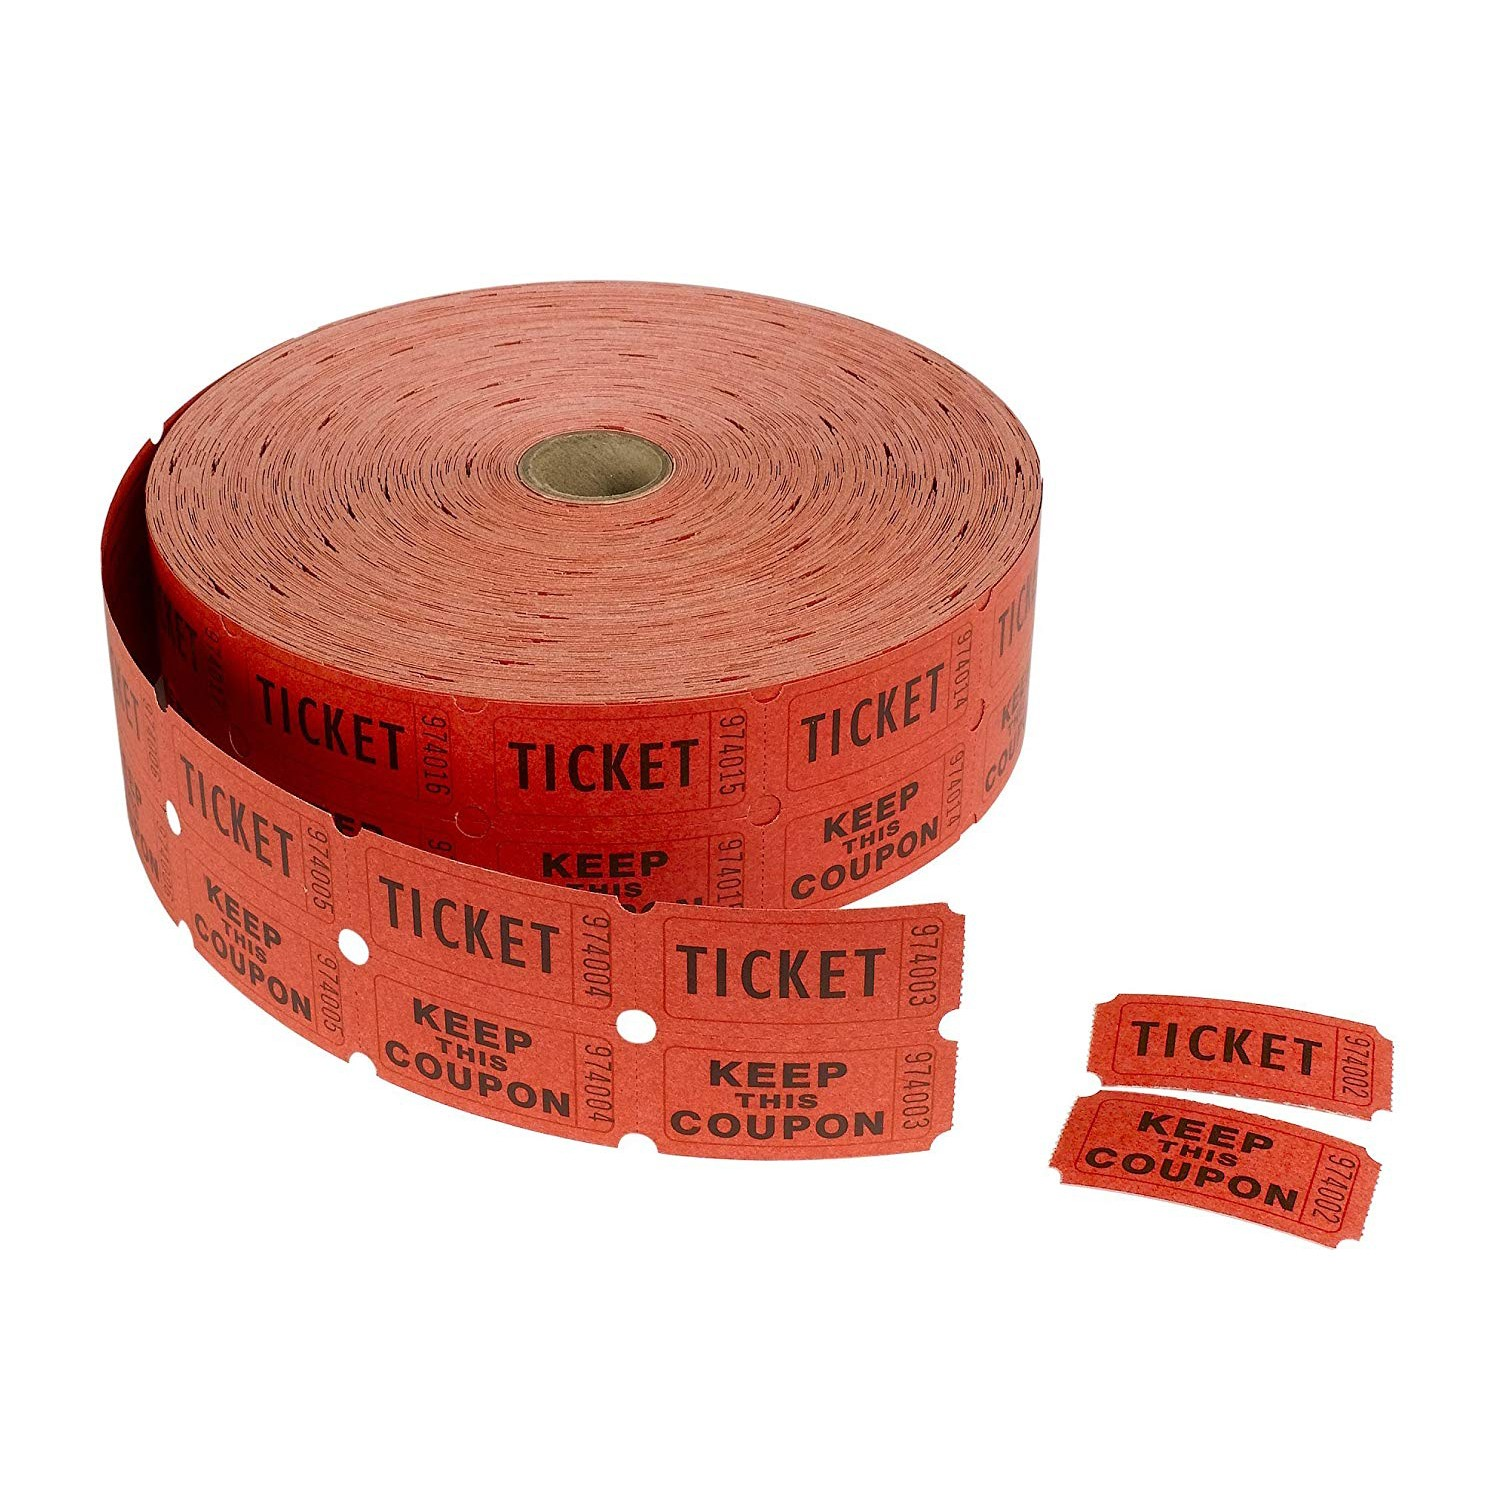 "TOTALPACK® 2 x 1"" Double Coupon Tickets - ""Keep This Coupon"", Red 2000 Tickets per Roll"